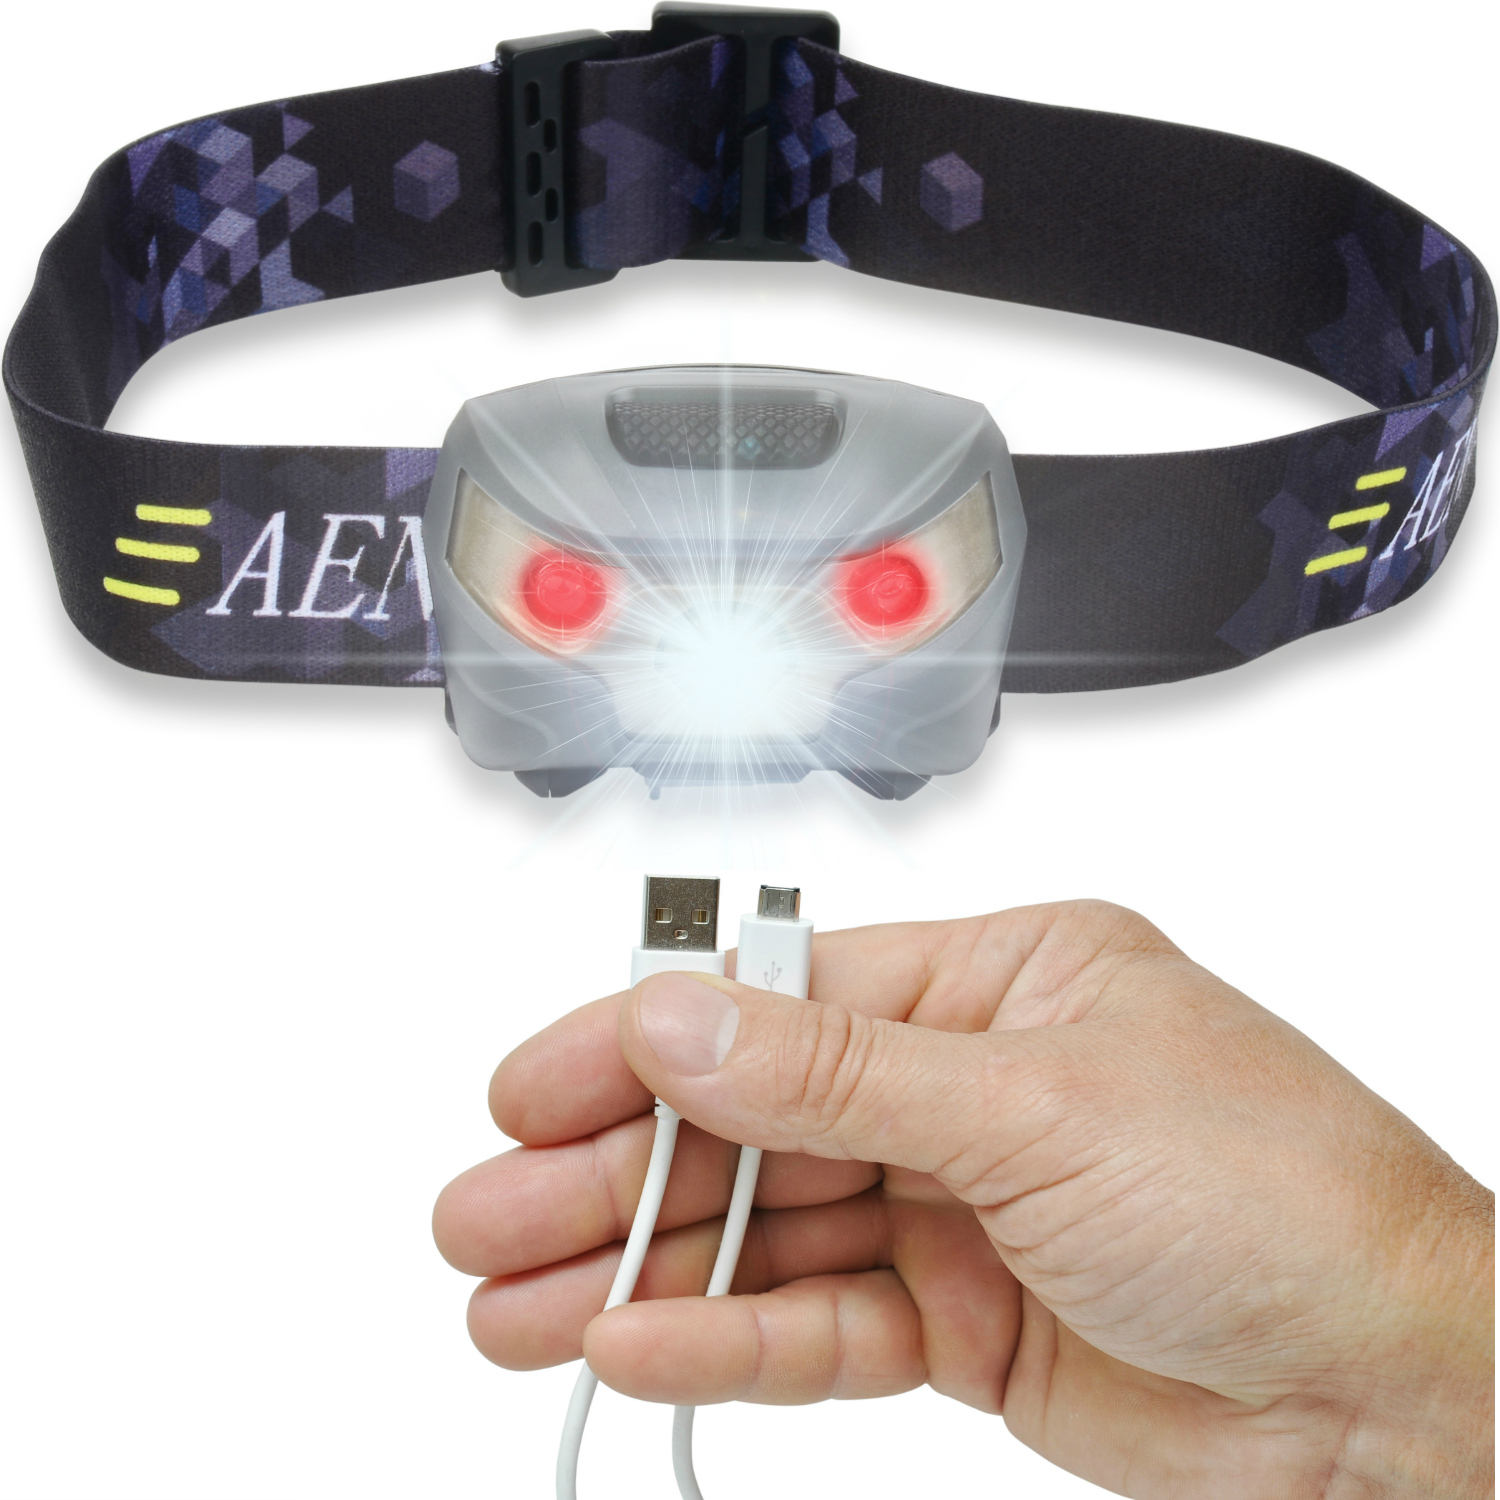 USB Rechargeable LED Headlamp Flashlight Super Bright, Waterproof & Comfortable Perfect Headlamps for Running, Walking,... by